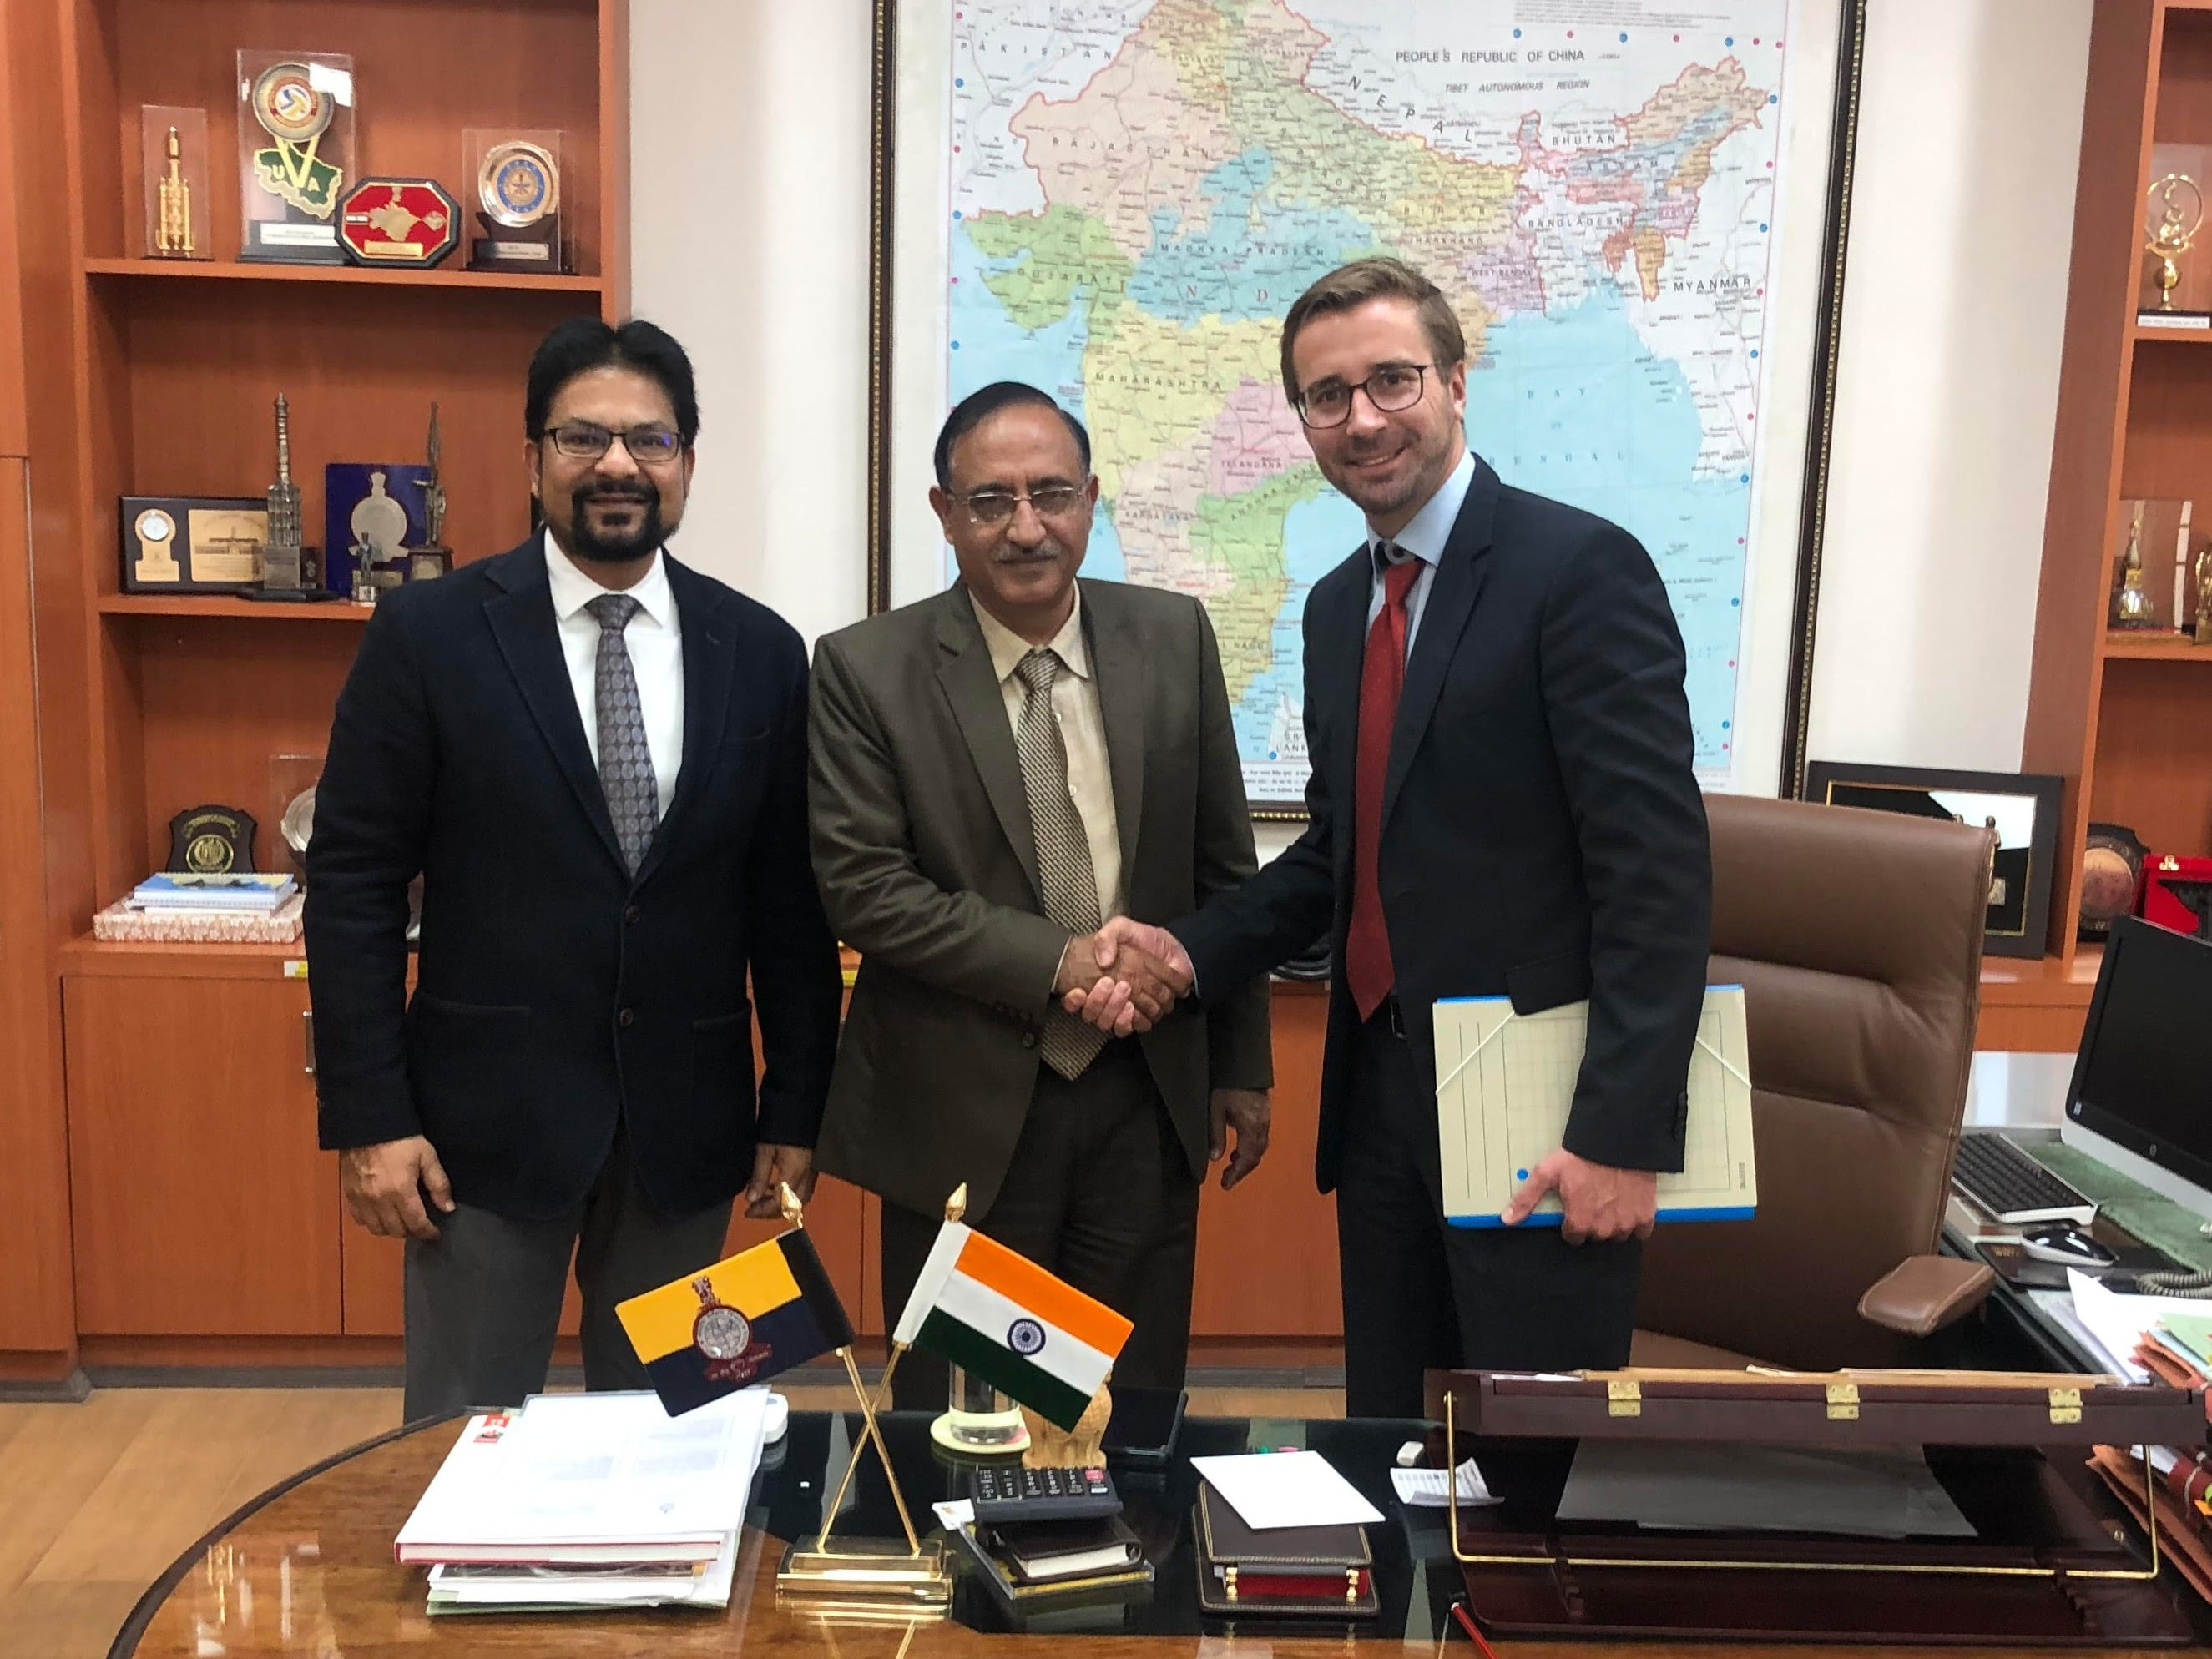 Sajid Mukhtar (MD, API-Roter Group) with Surveyor General Girish Kumar and Florian Seibel (CEO Quantum-Systems)